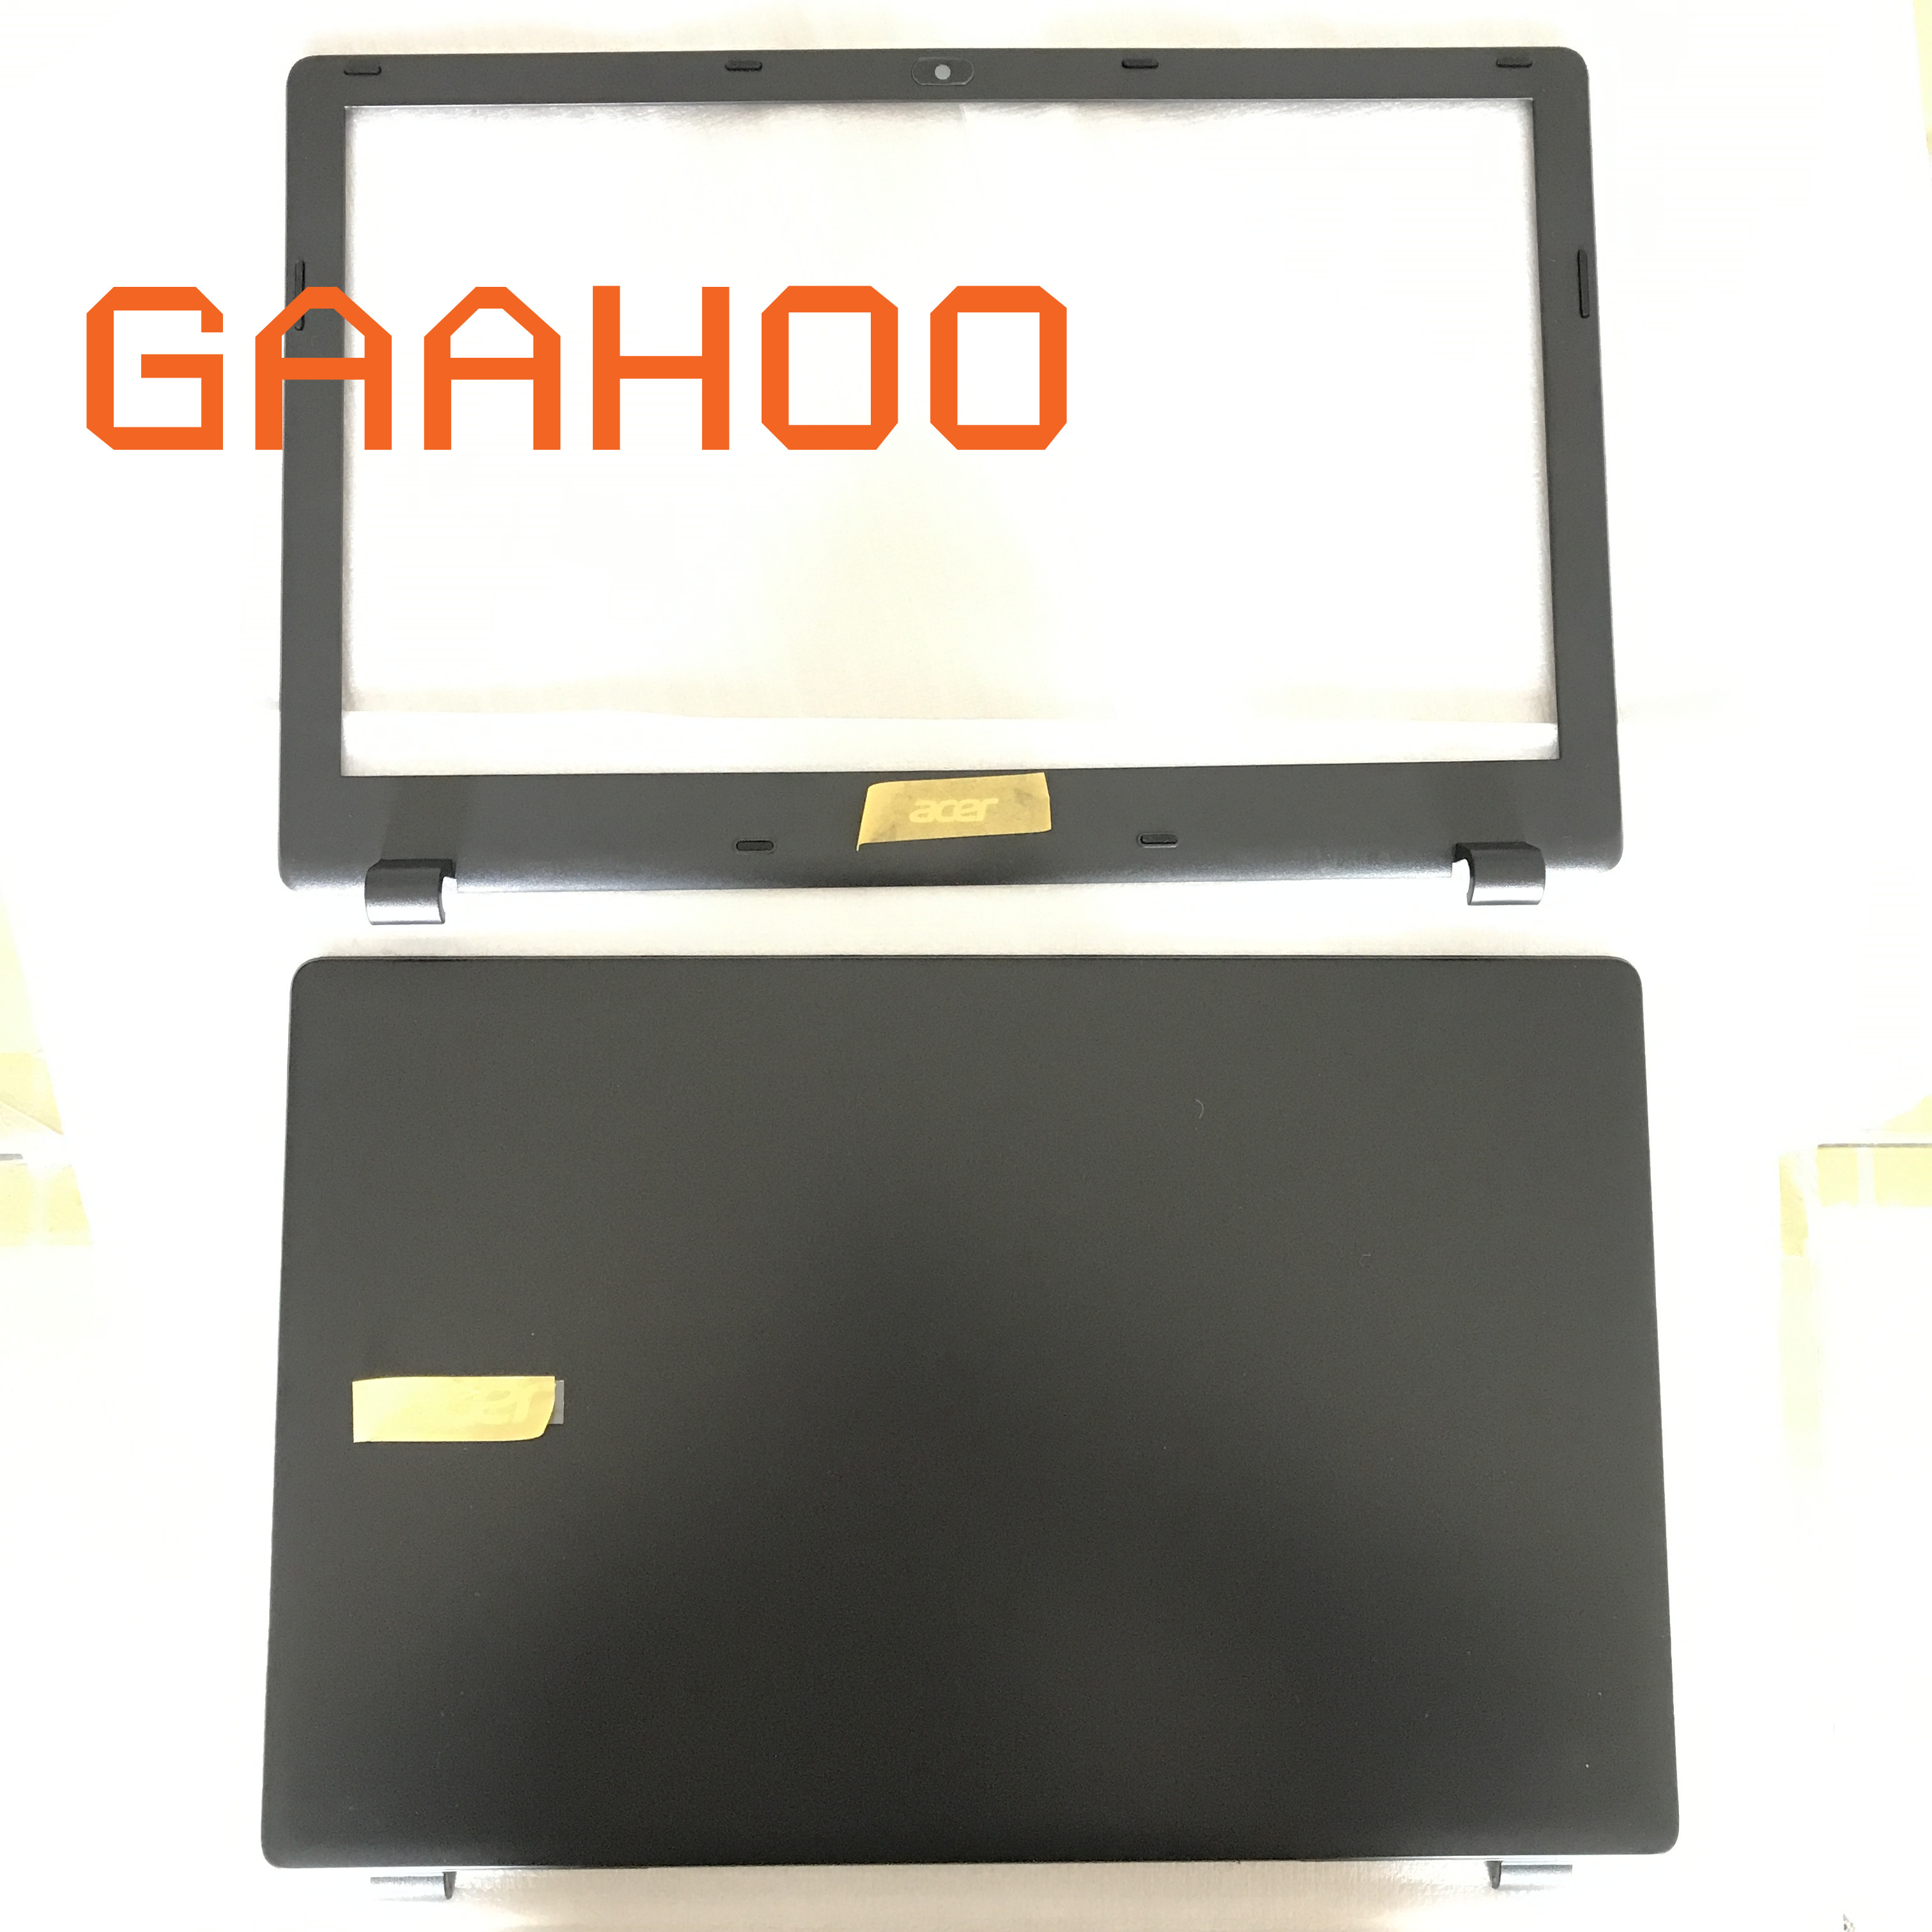 For ACER Aspire E5-572 E5-571 E5-551 E5-521 E5-511 E5-511G E5-551G E5-571G E5-531 LCD Back Cover Front Bezel